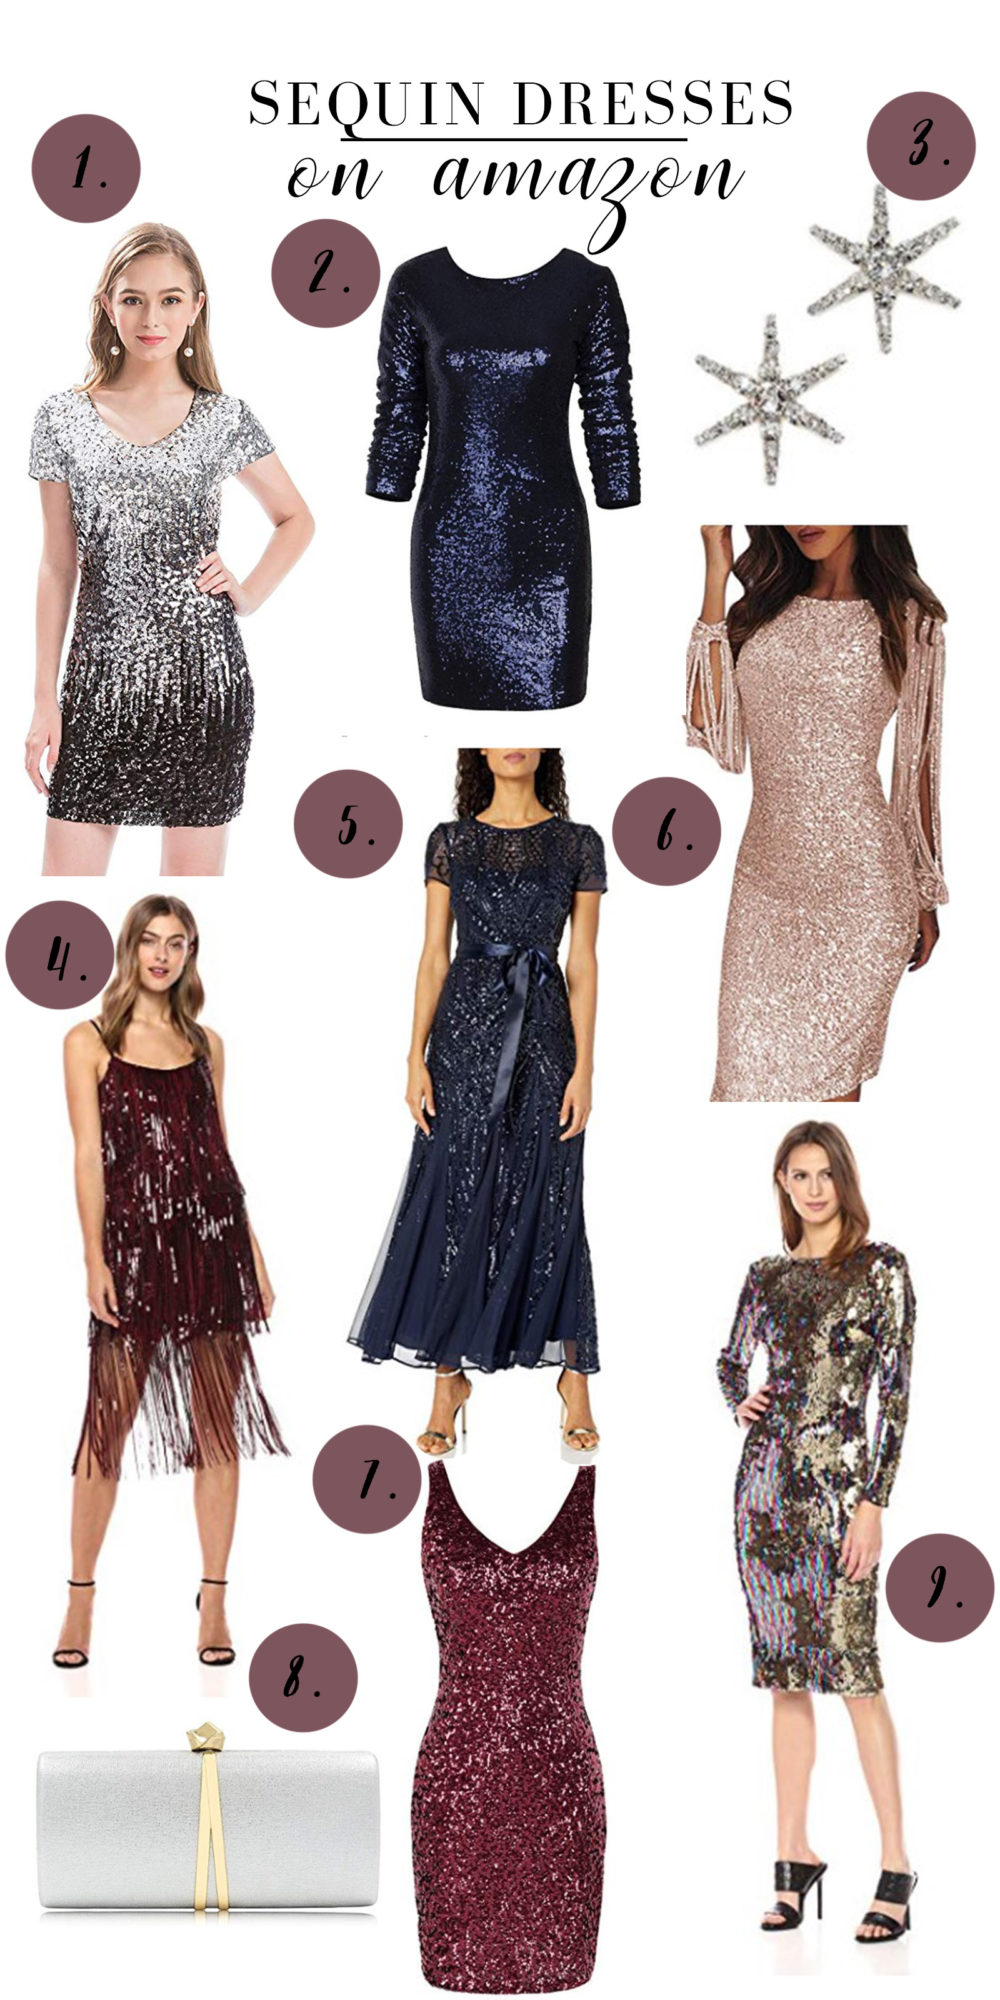 Petite Fashion Blog | Sequin Dresses on Amazon | Sequin Dresses | Dress the Population Dresses